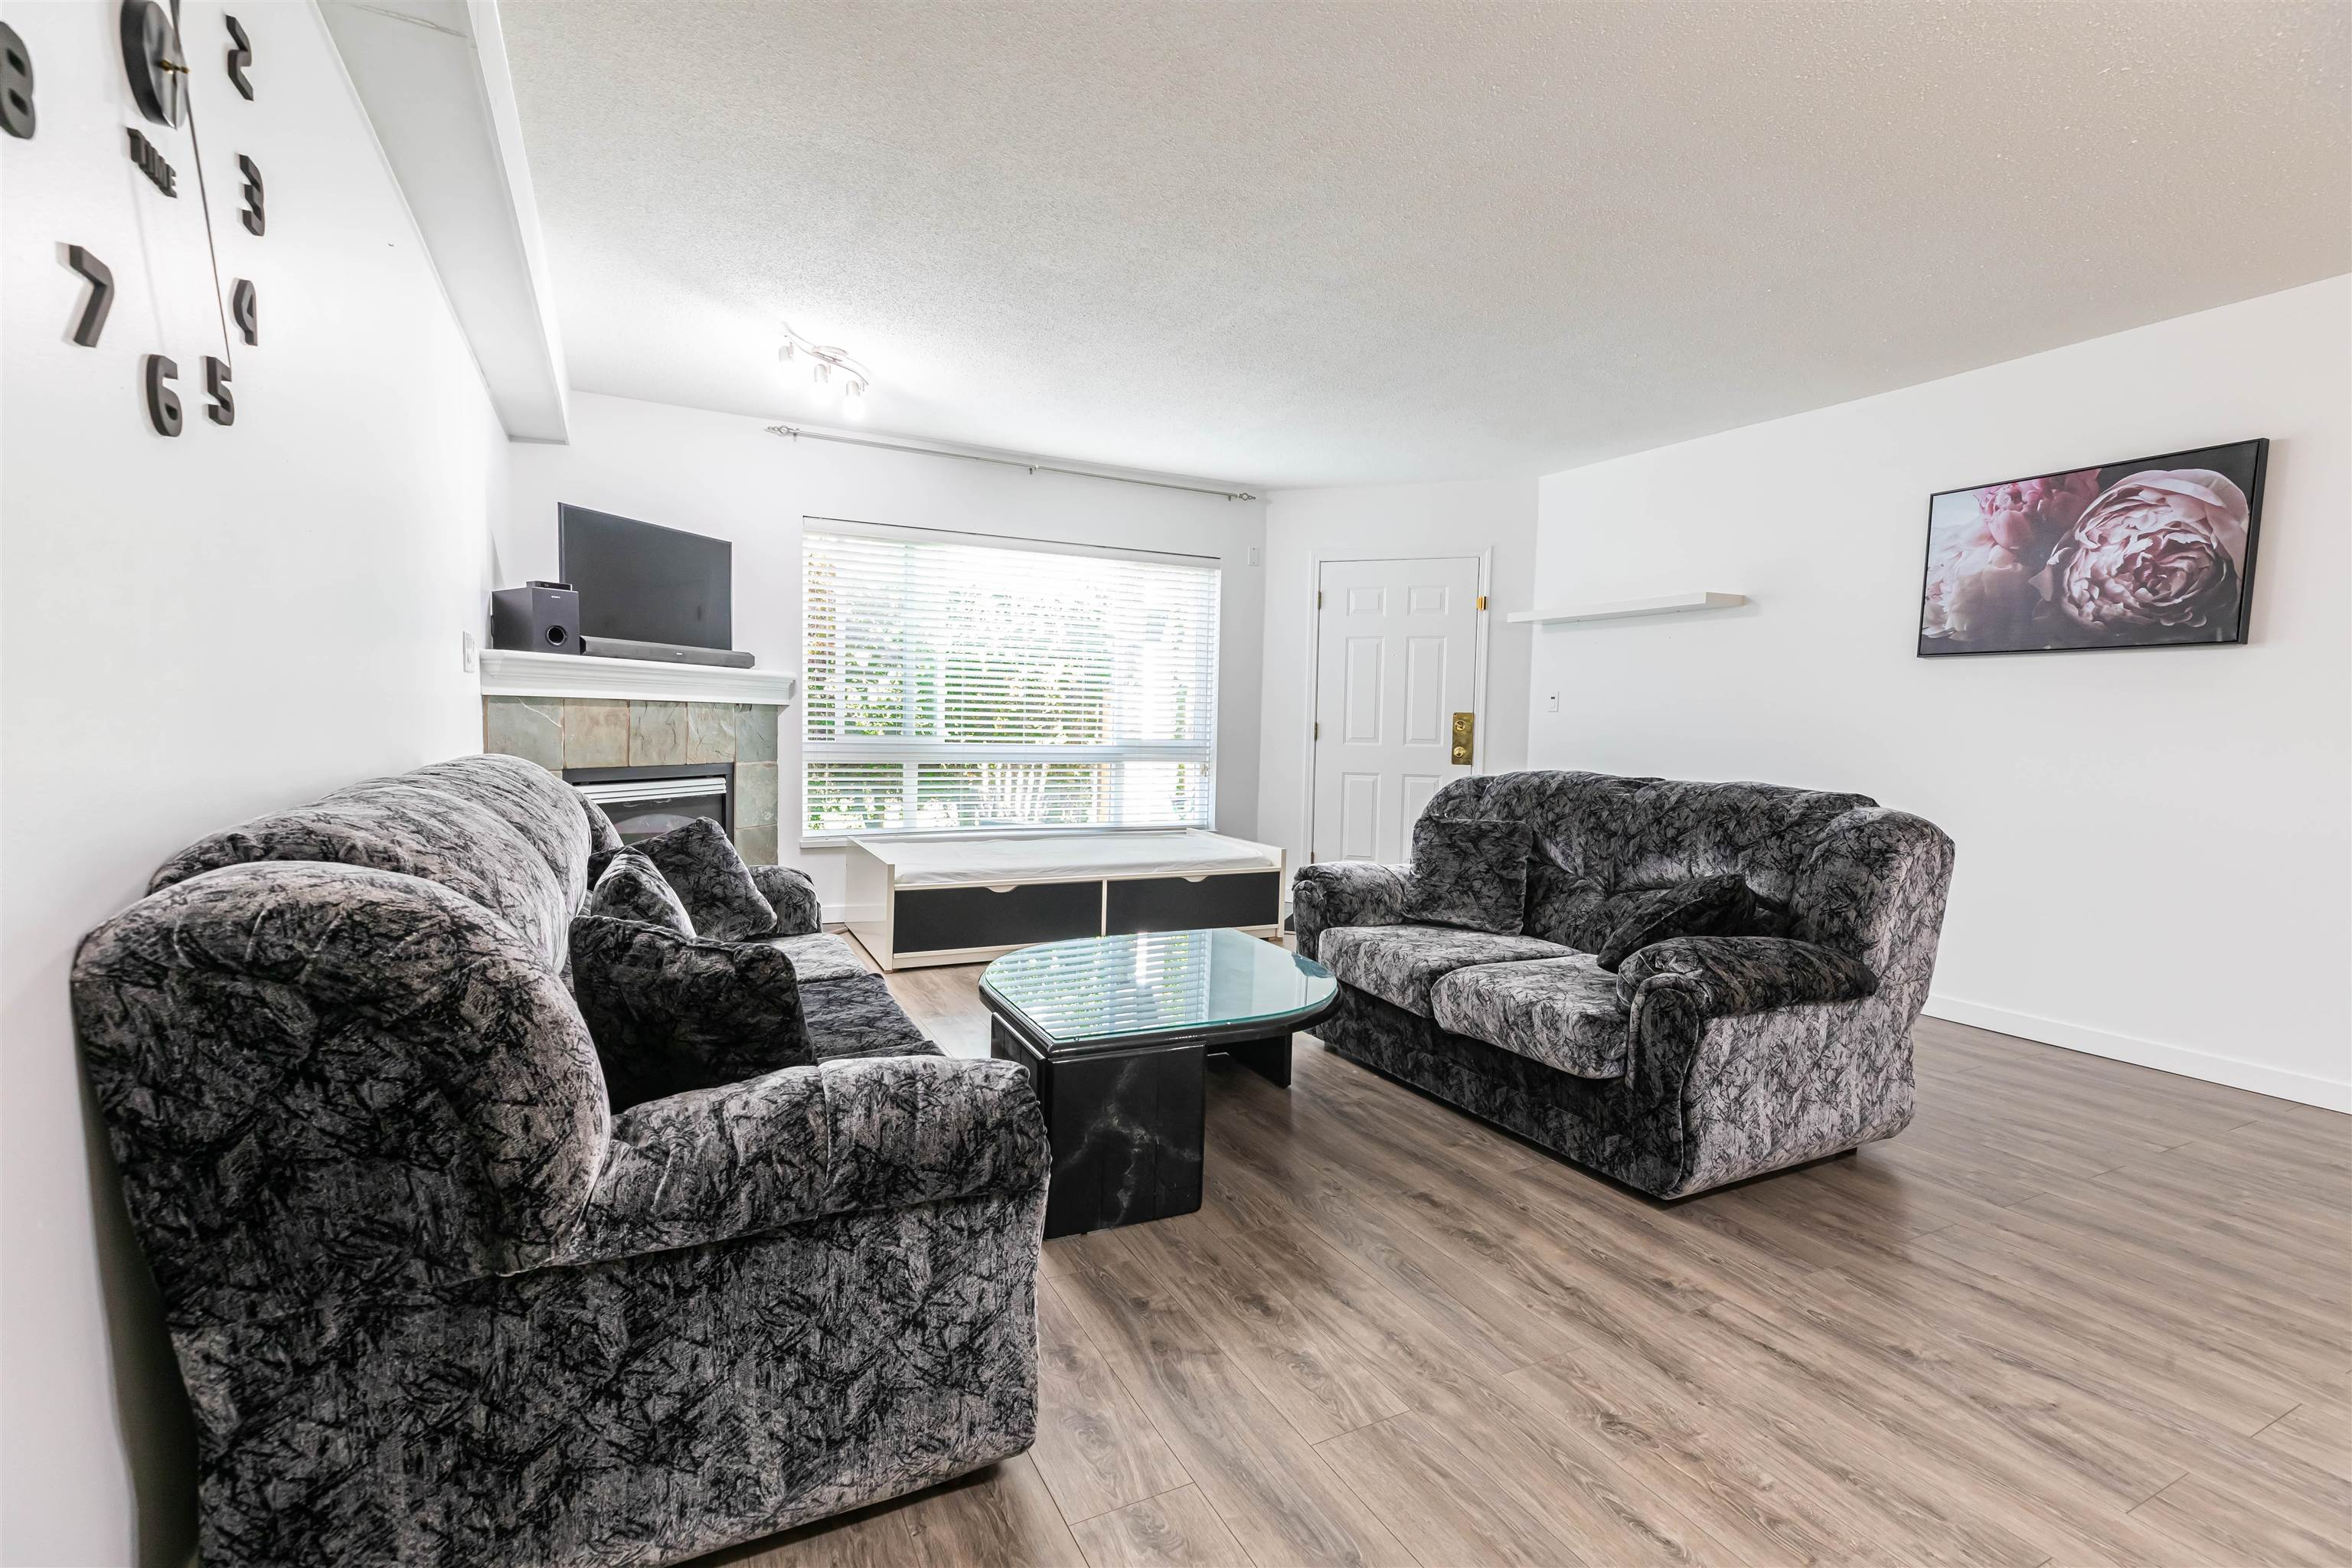 6 13670 84 AVENUE - Bear Creek Green Timbers Townhouse for sale, 2 Bedrooms (R2625536) - #4